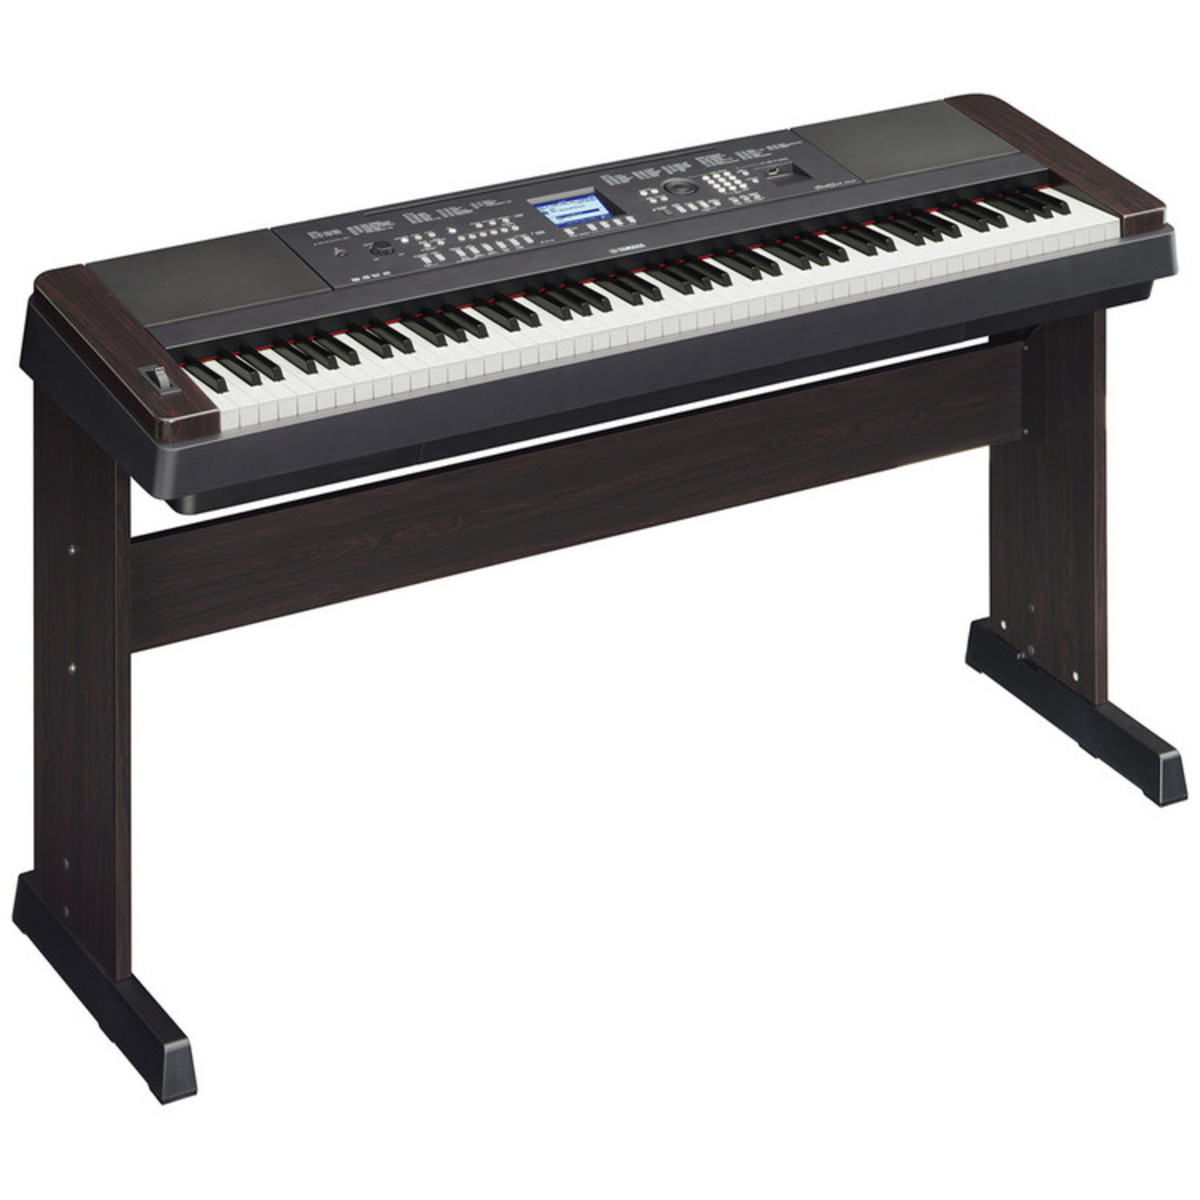 disc yamaha portable grand dgx650 digital piano black at gear4music. Black Bedroom Furniture Sets. Home Design Ideas